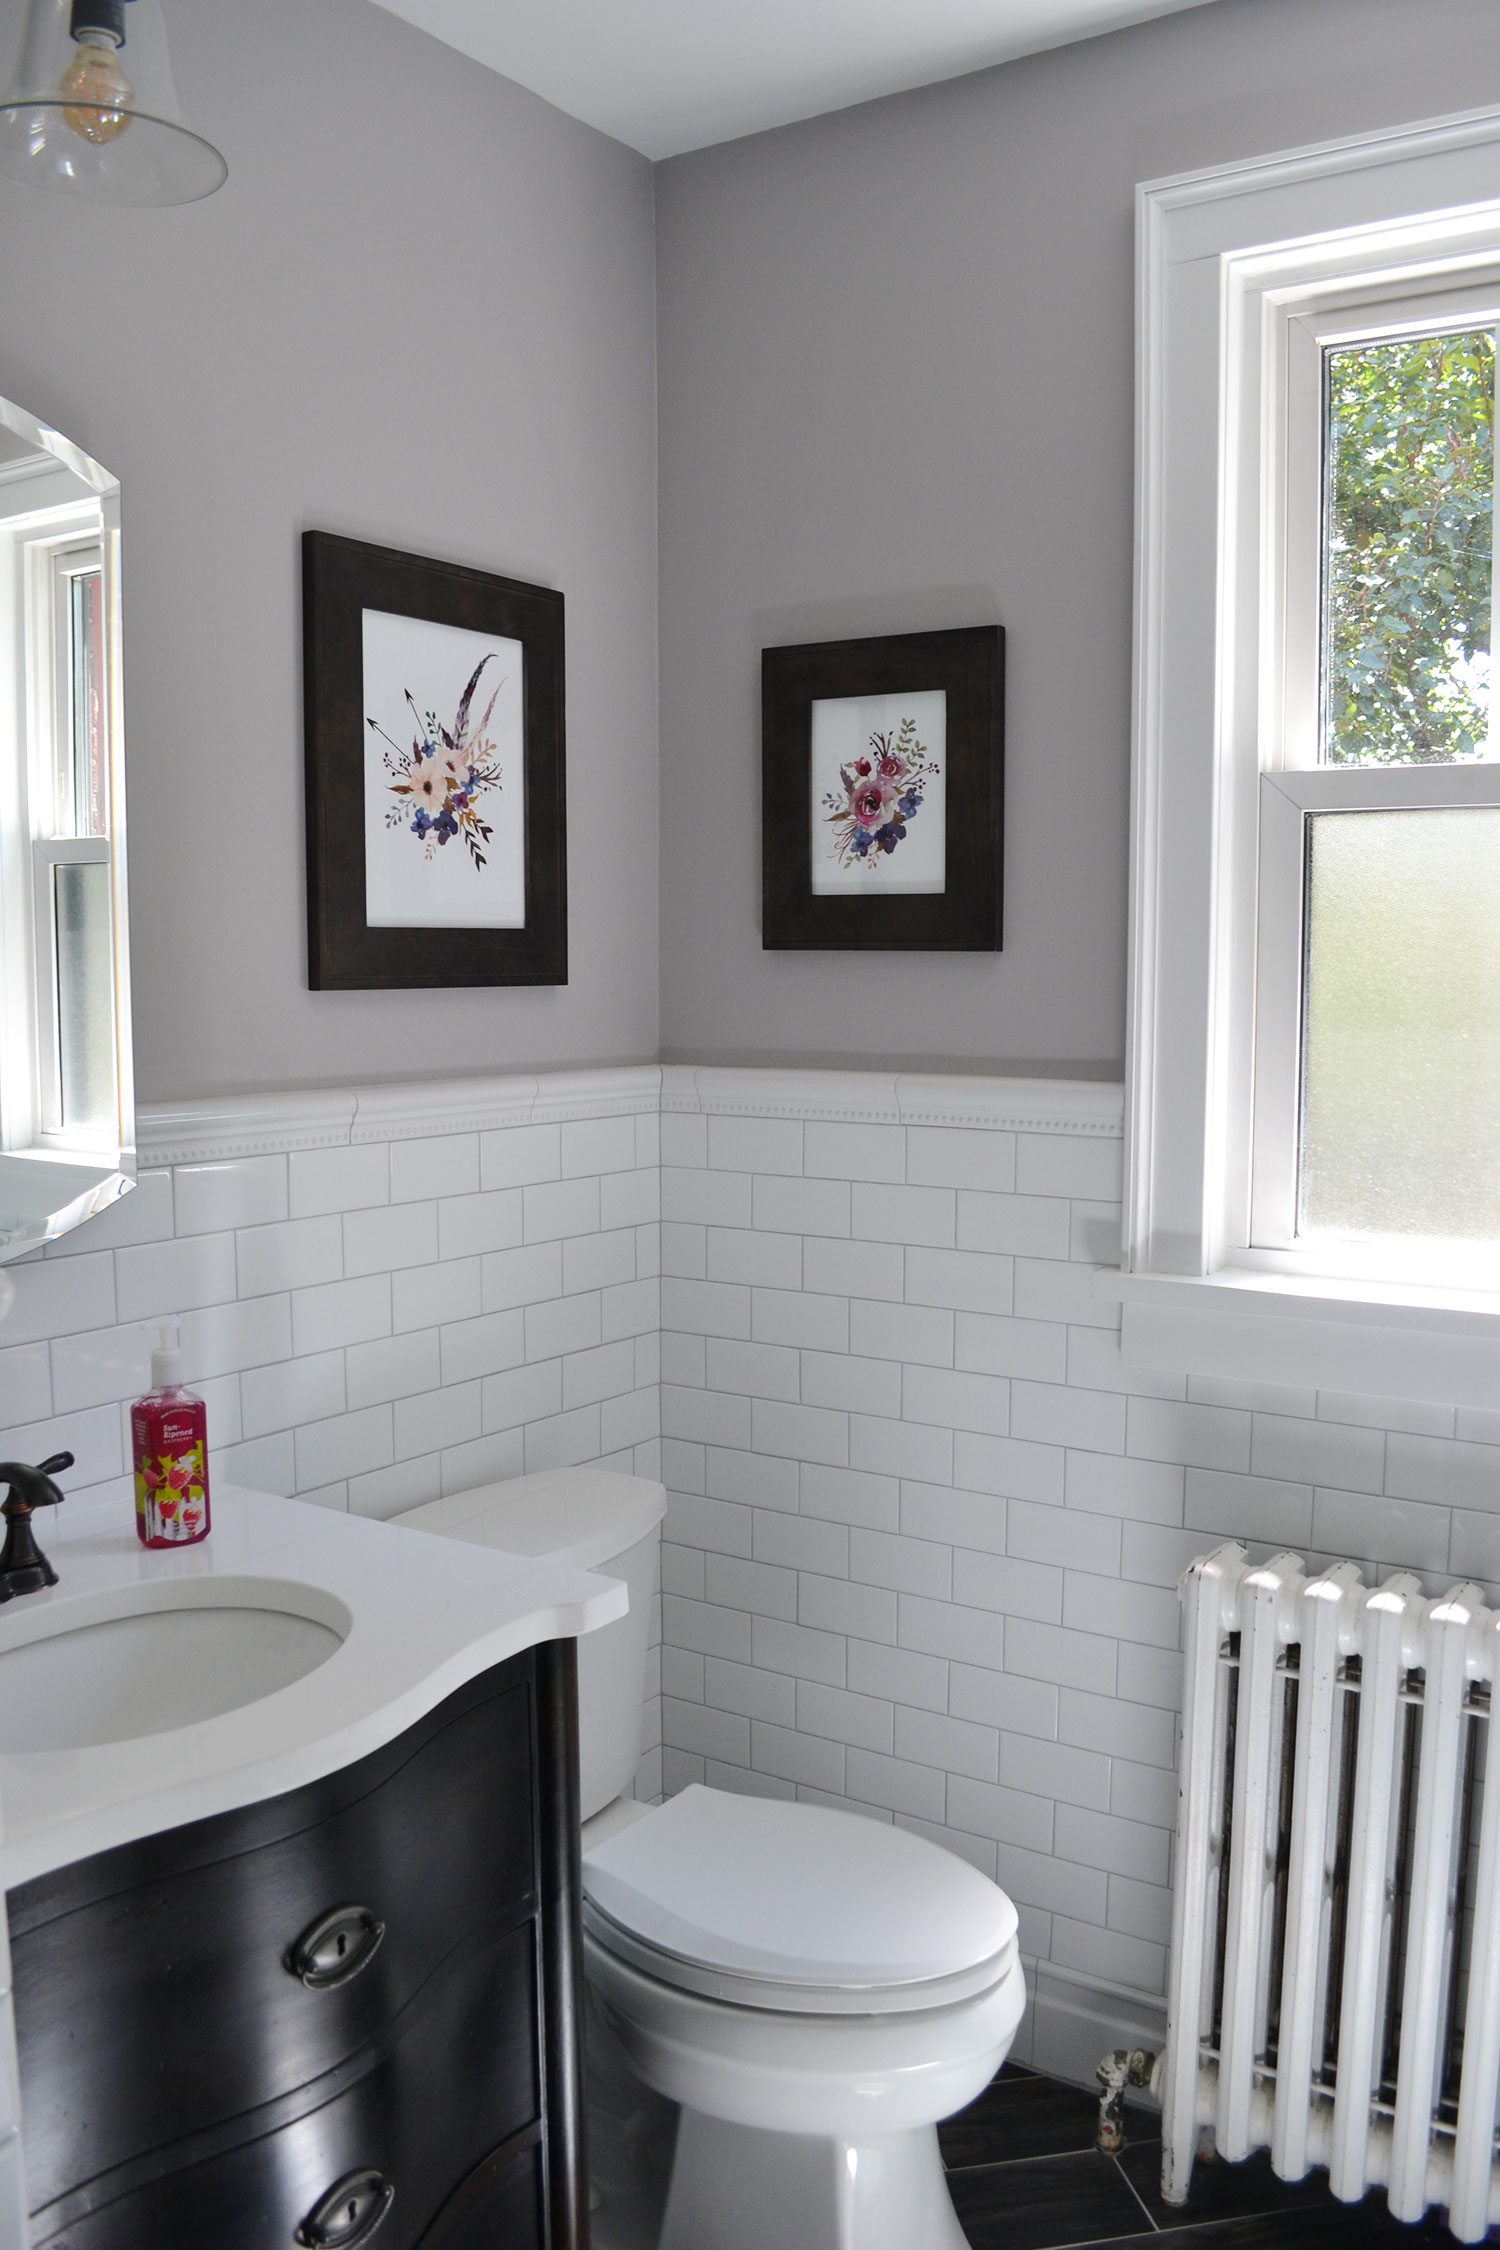 S Bathroom Remodel Reveal Life Is Sweet As A Peach - Total bathroom remodel